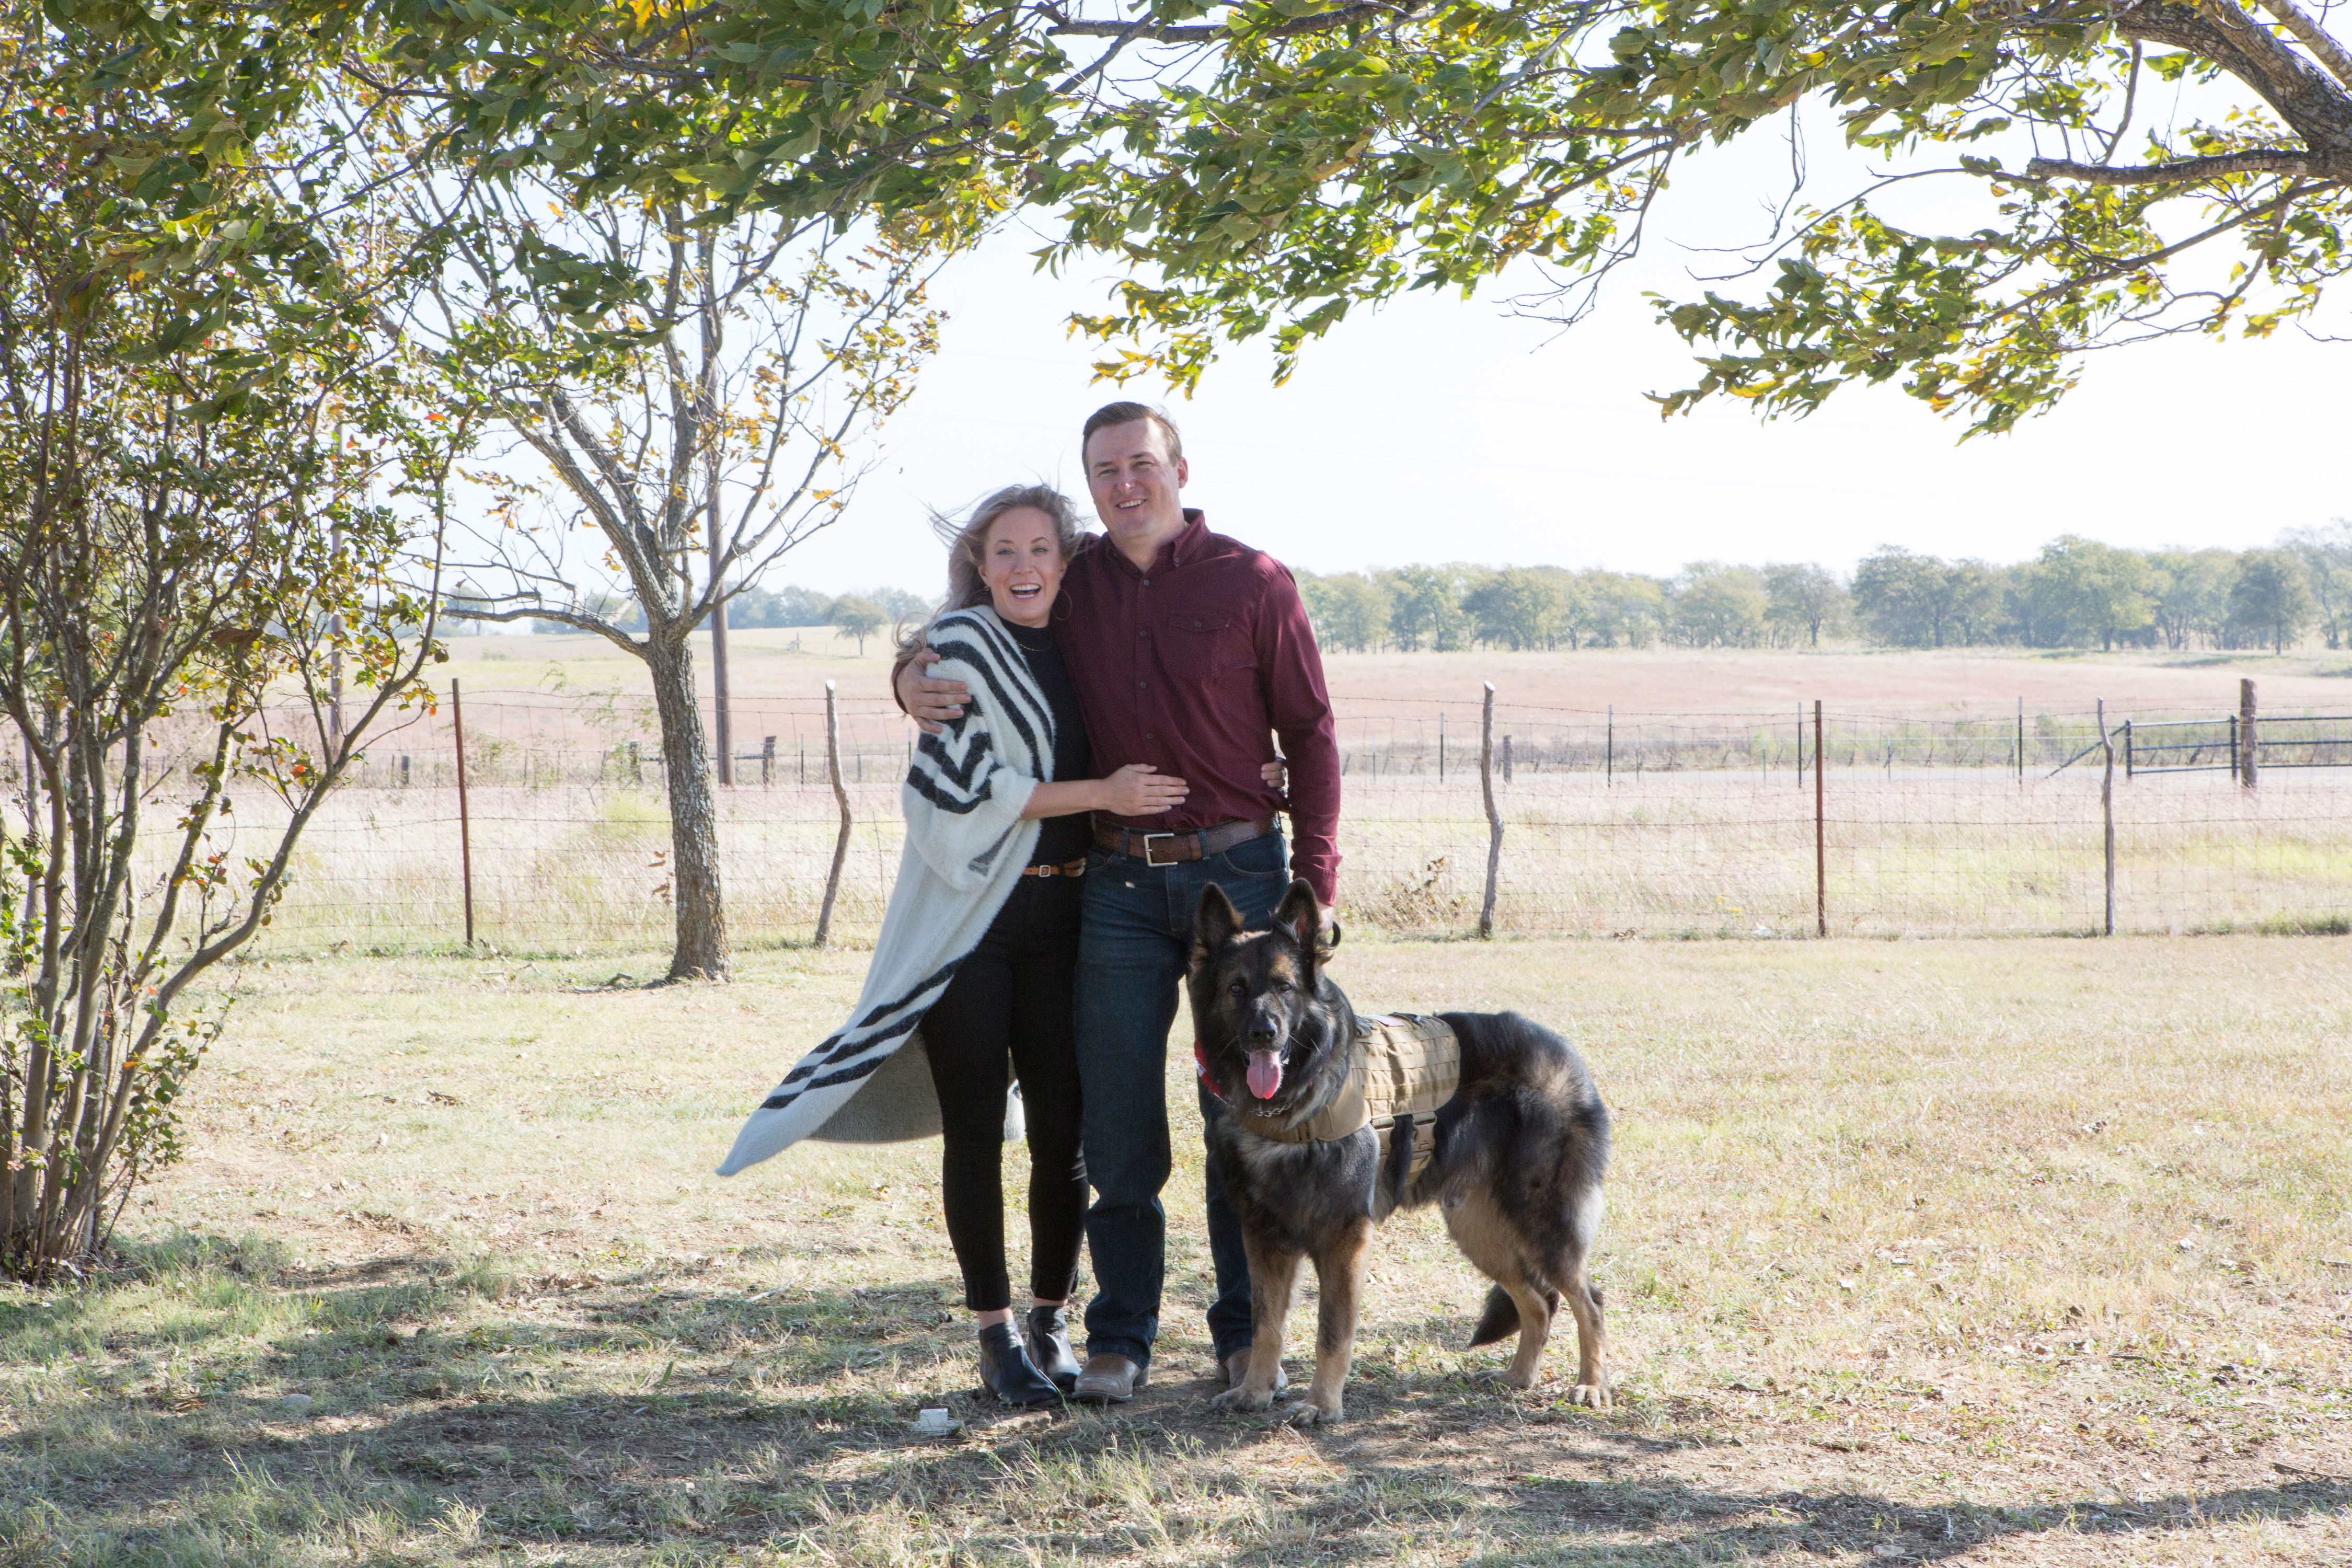 ICYMI: Last Night's Emotional Episode of Fixer Upper Included the Show's First-Ever Proposal